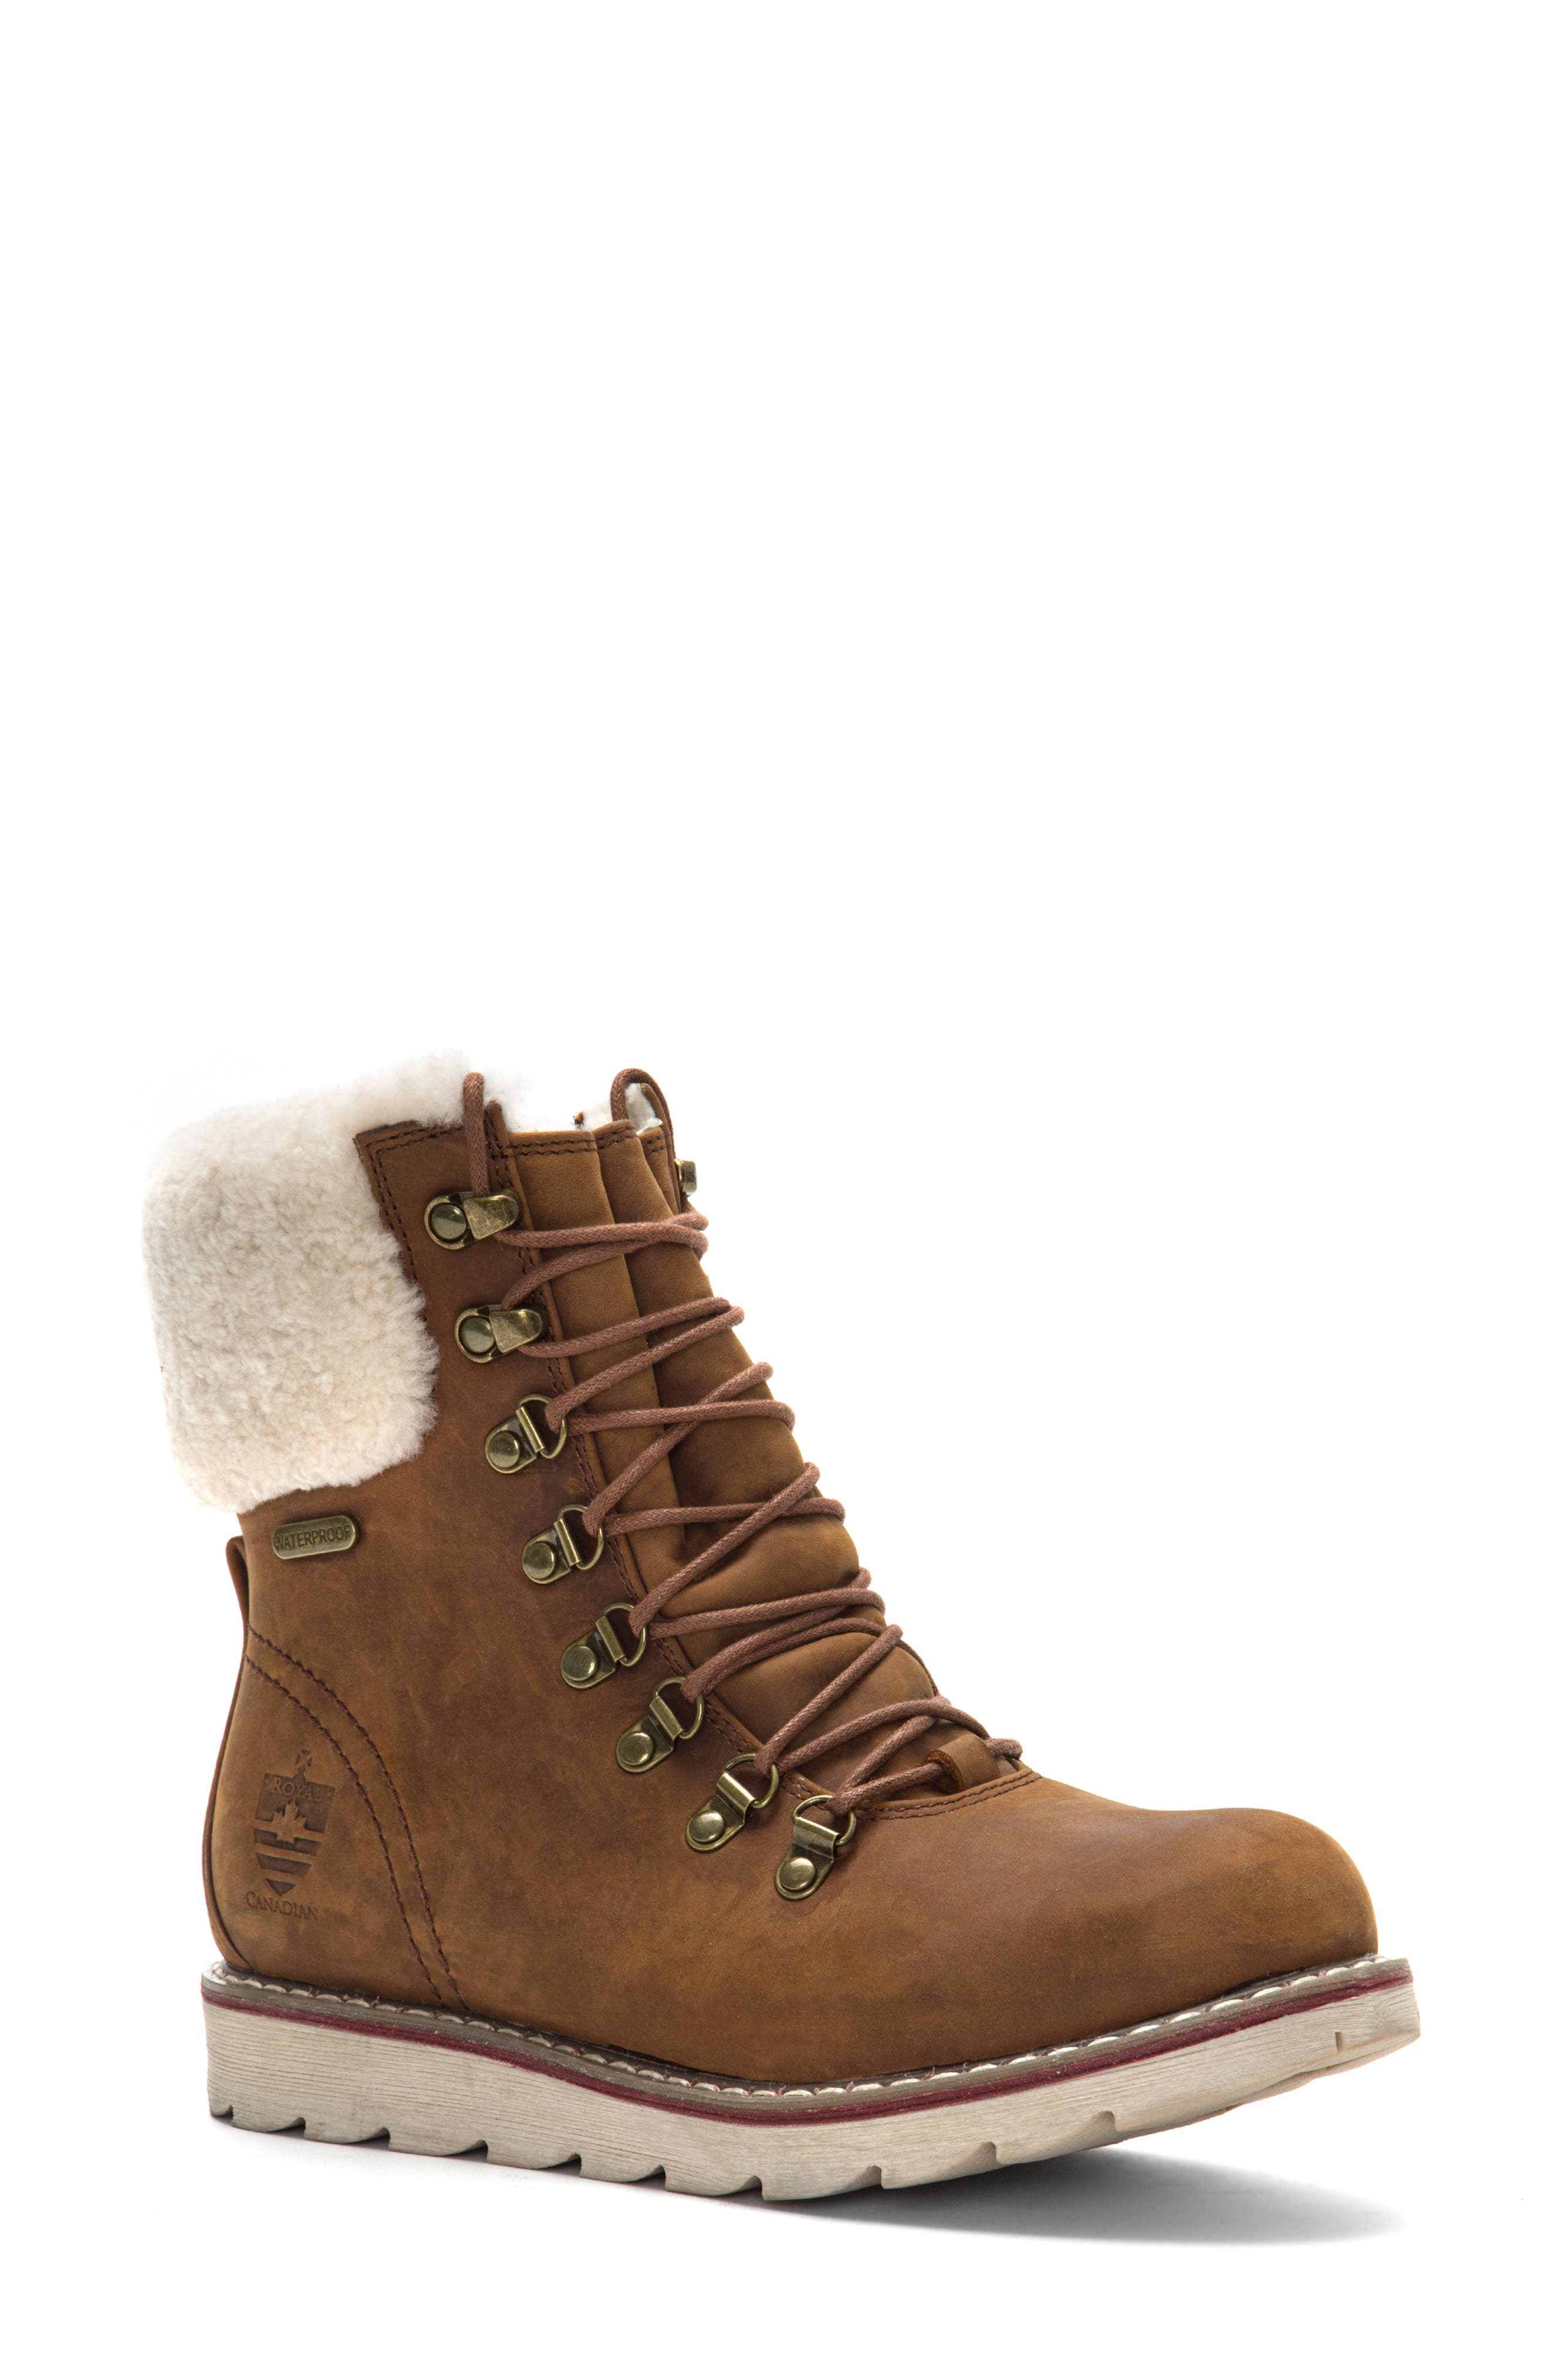 ROYAL CANADIAN Lethbridge Waterproof Snow Boot with Genuine Shearling Cuff, Main, color, COTTAGE BROWN LEATHER